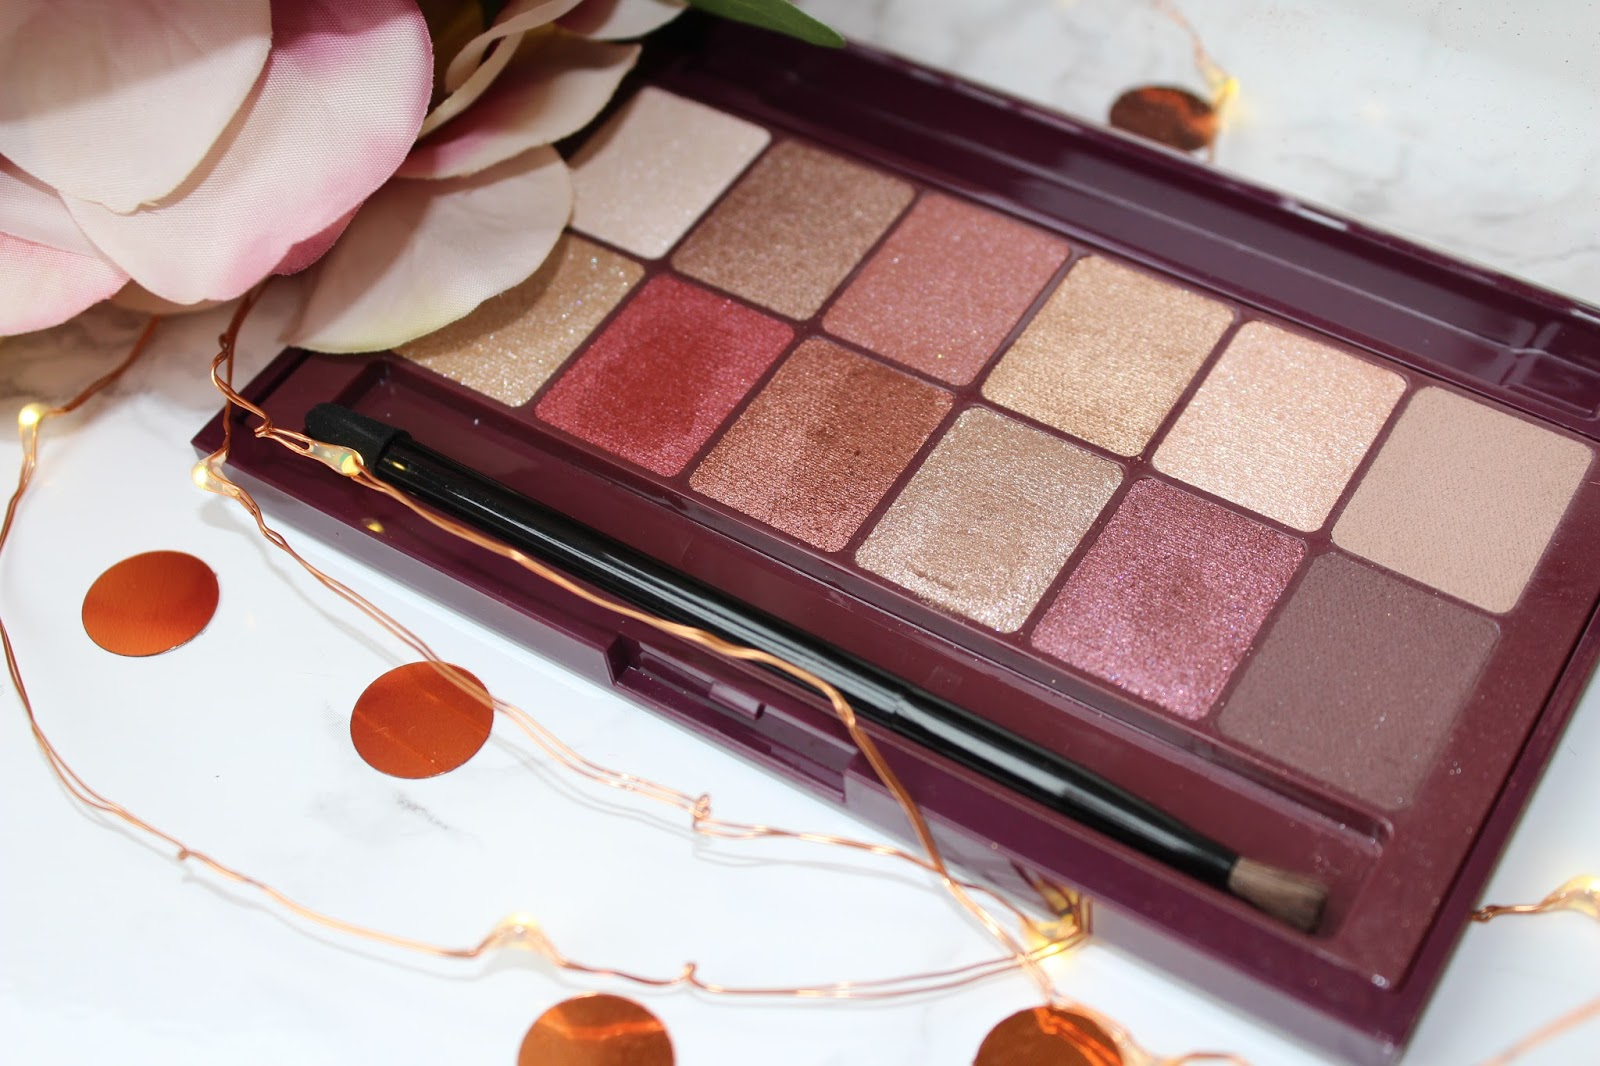 Maybelline The Burgundy Bar Eyeshadow Palette Review - 7